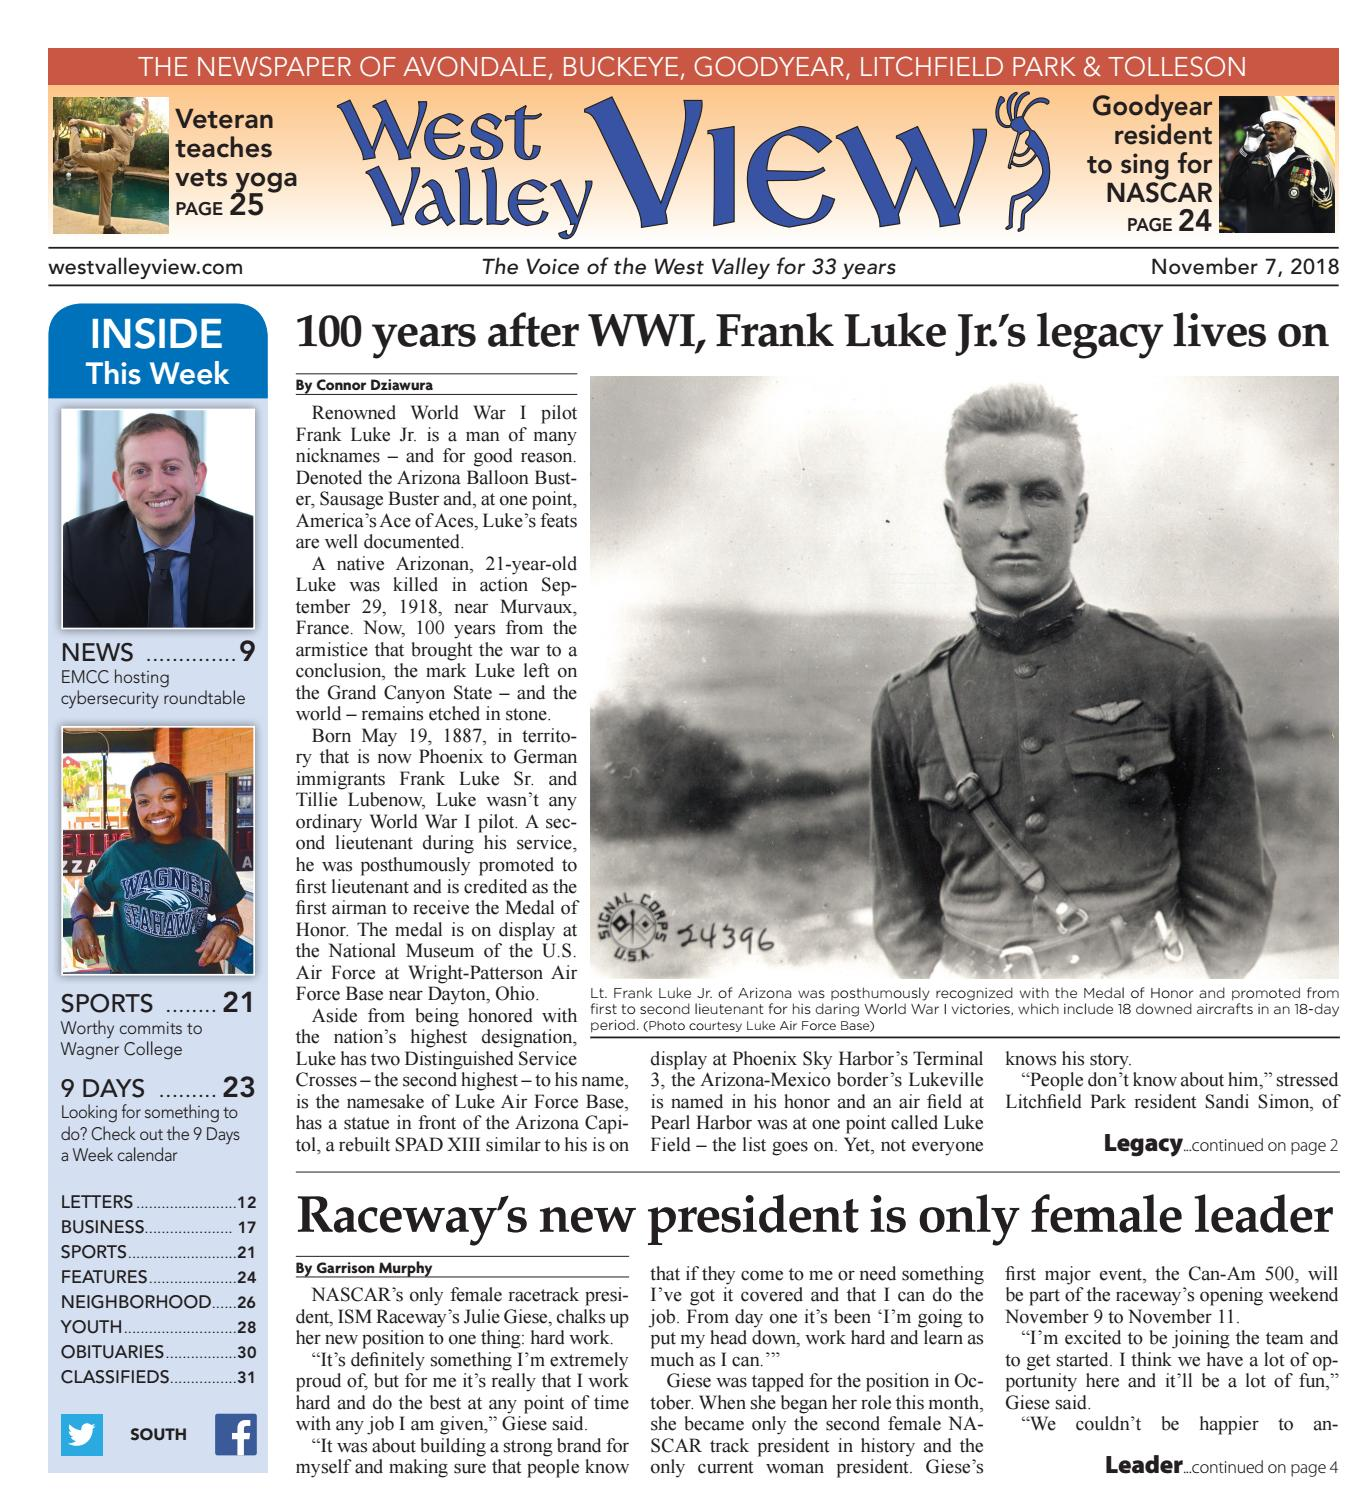 West Valley View: South November 7, 2018 by Times Media